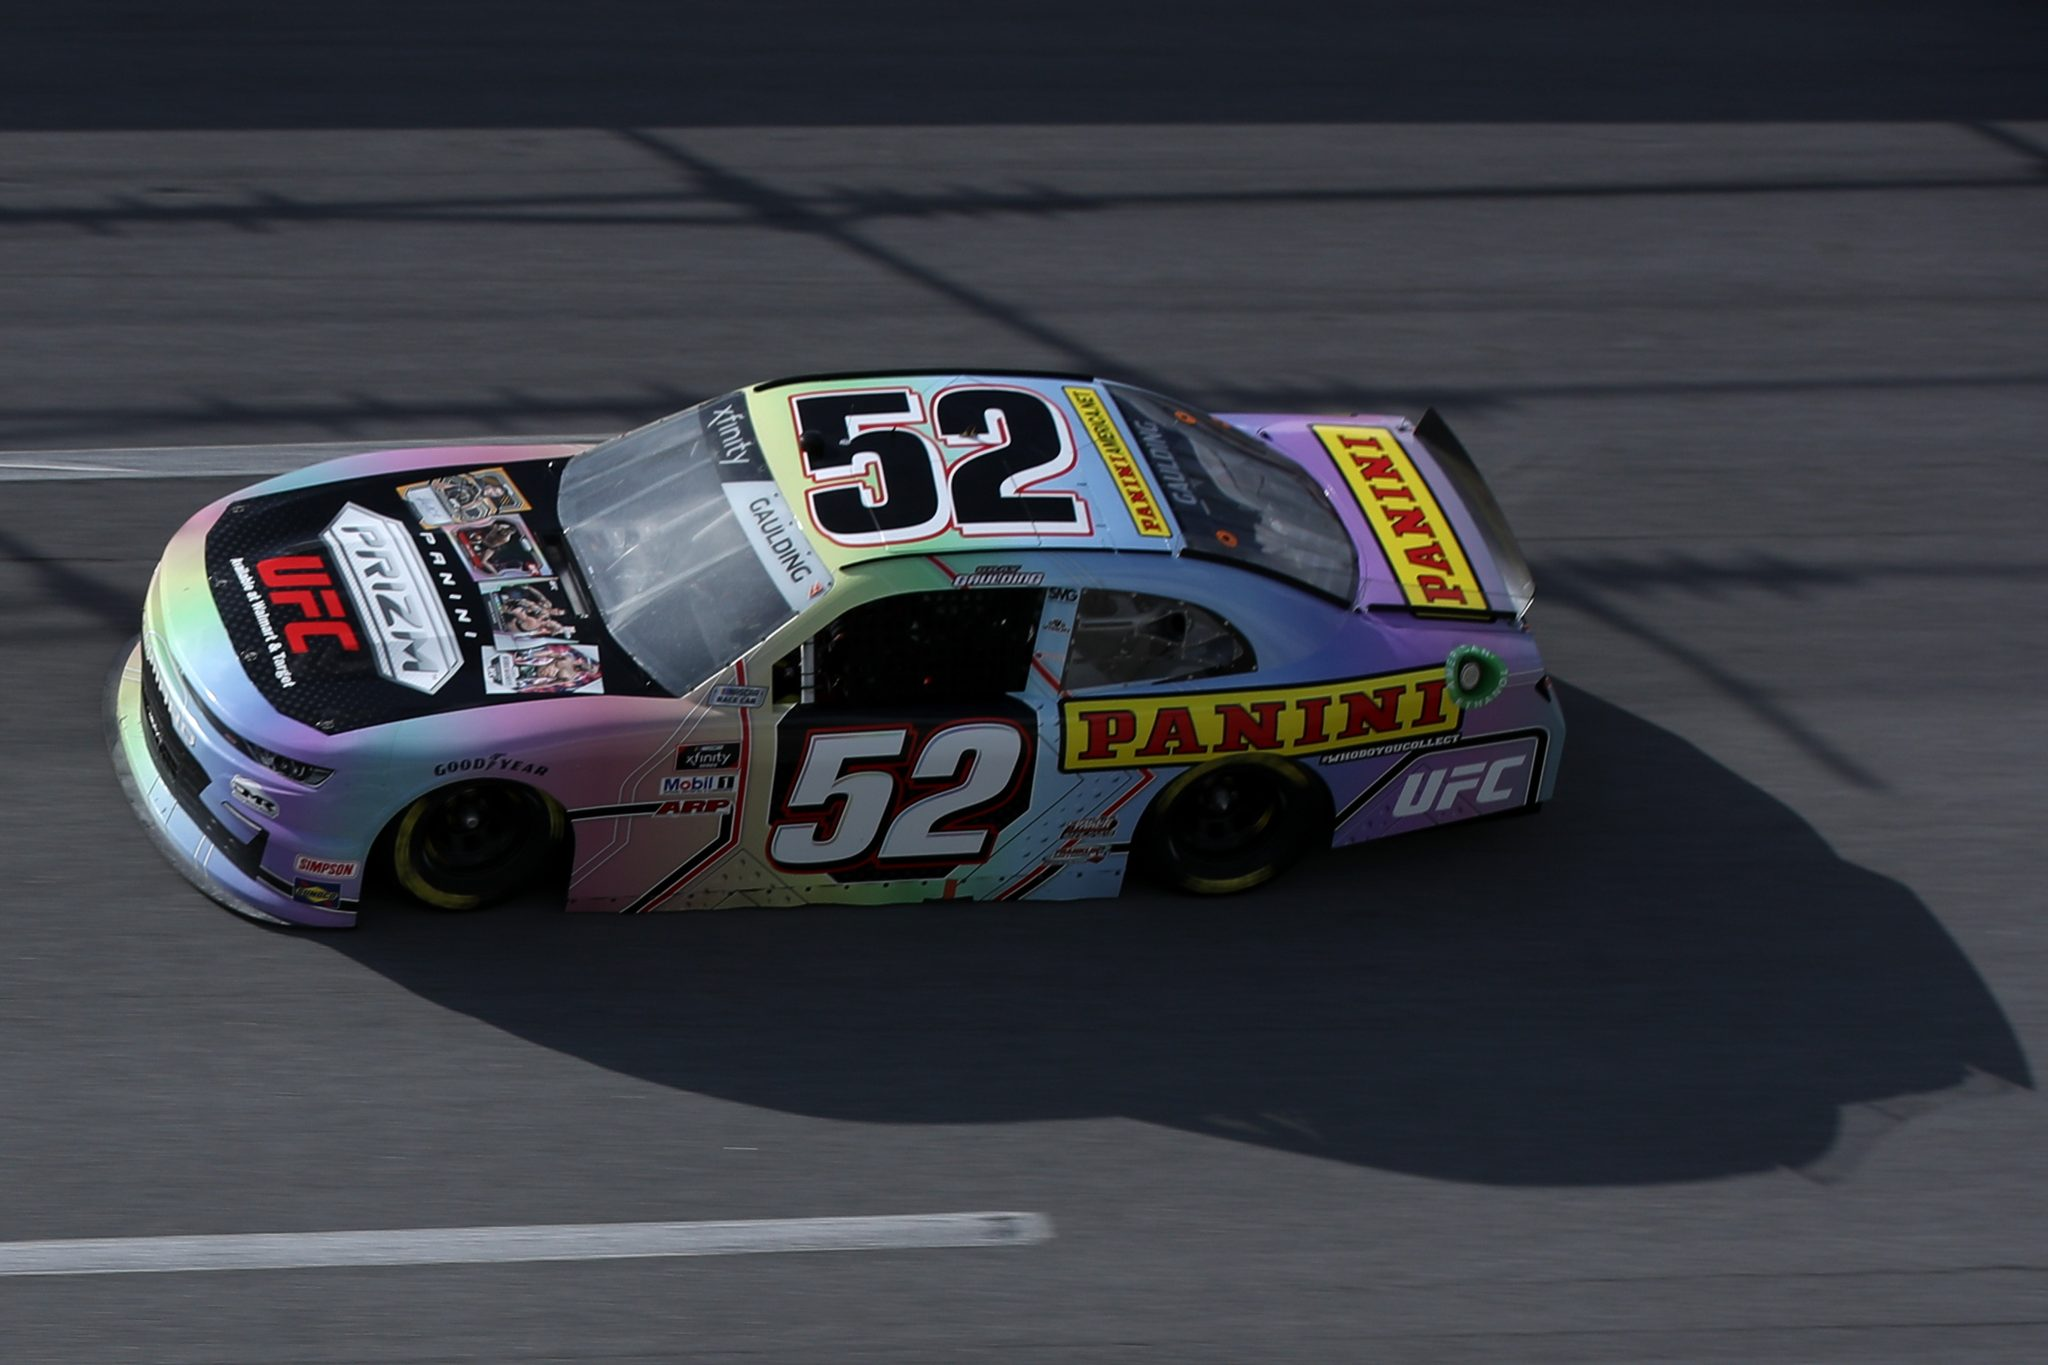 TALLADEGA, ALABAMA - APRIL 24: Gray Gaulding, driver of the #52 Panini America Chevrolet, drives during the NASCAR Xfinity Series Ag-Pro 300 at Talladega Superspeedway on April 24, 2021 in Talladega, Alabama. (Photo by Sean Gardner/Getty Images)   Getty Images